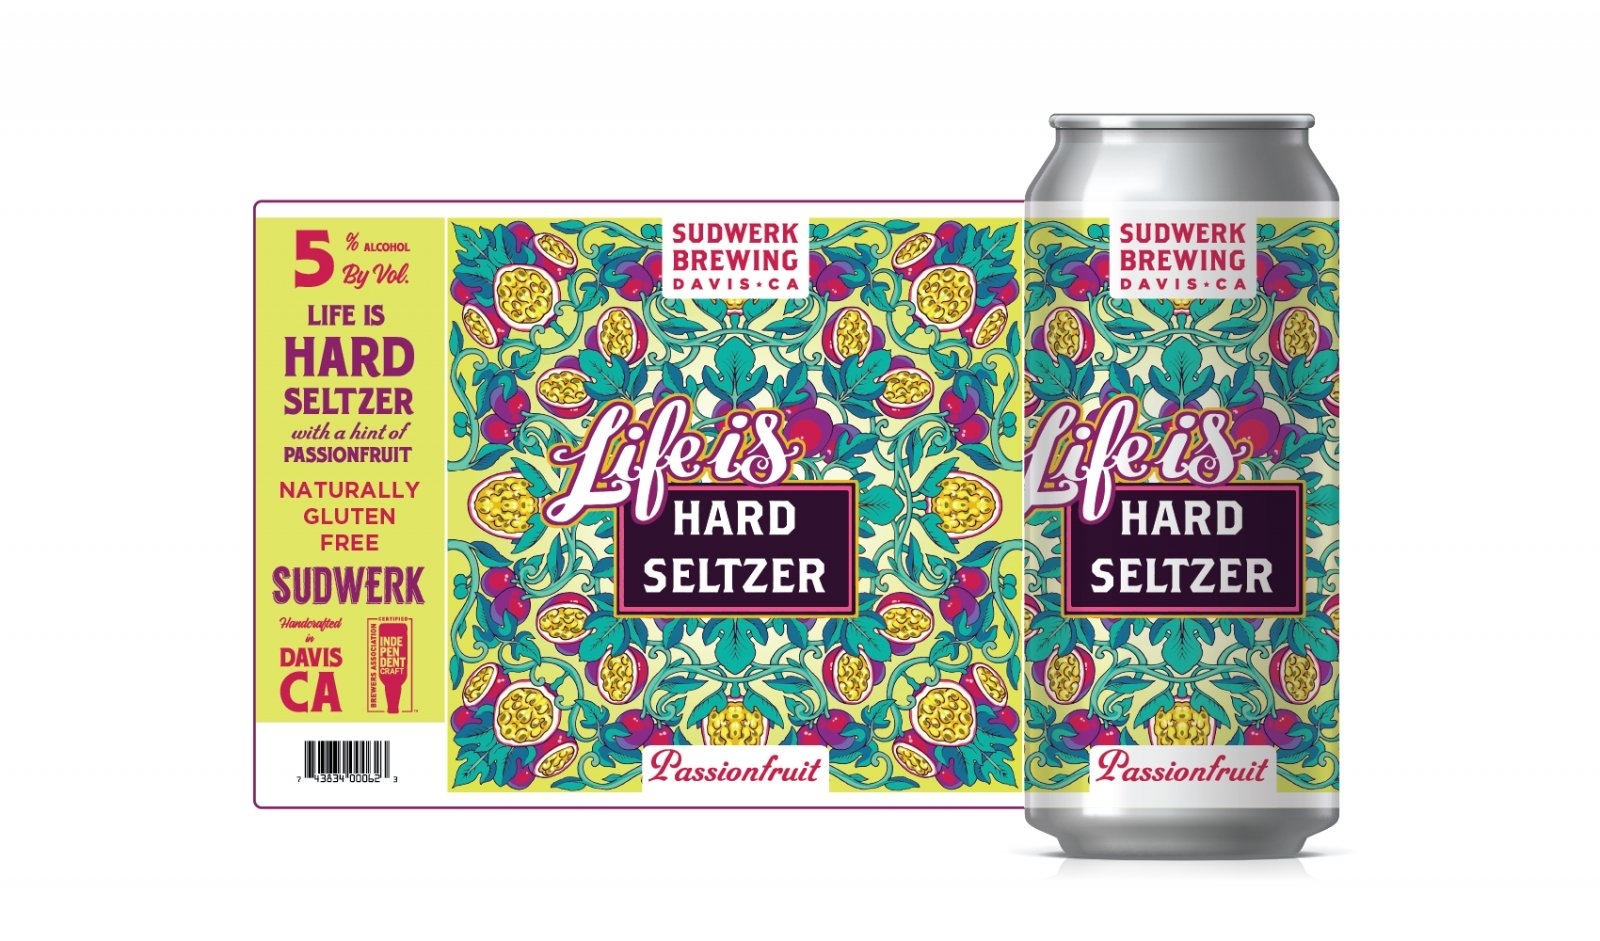 The labels for Life is Hard Seltzer are designed by Davis-based artist Gregory Schilling. (Photo courtesy of Sudwerk Brewing Co.)